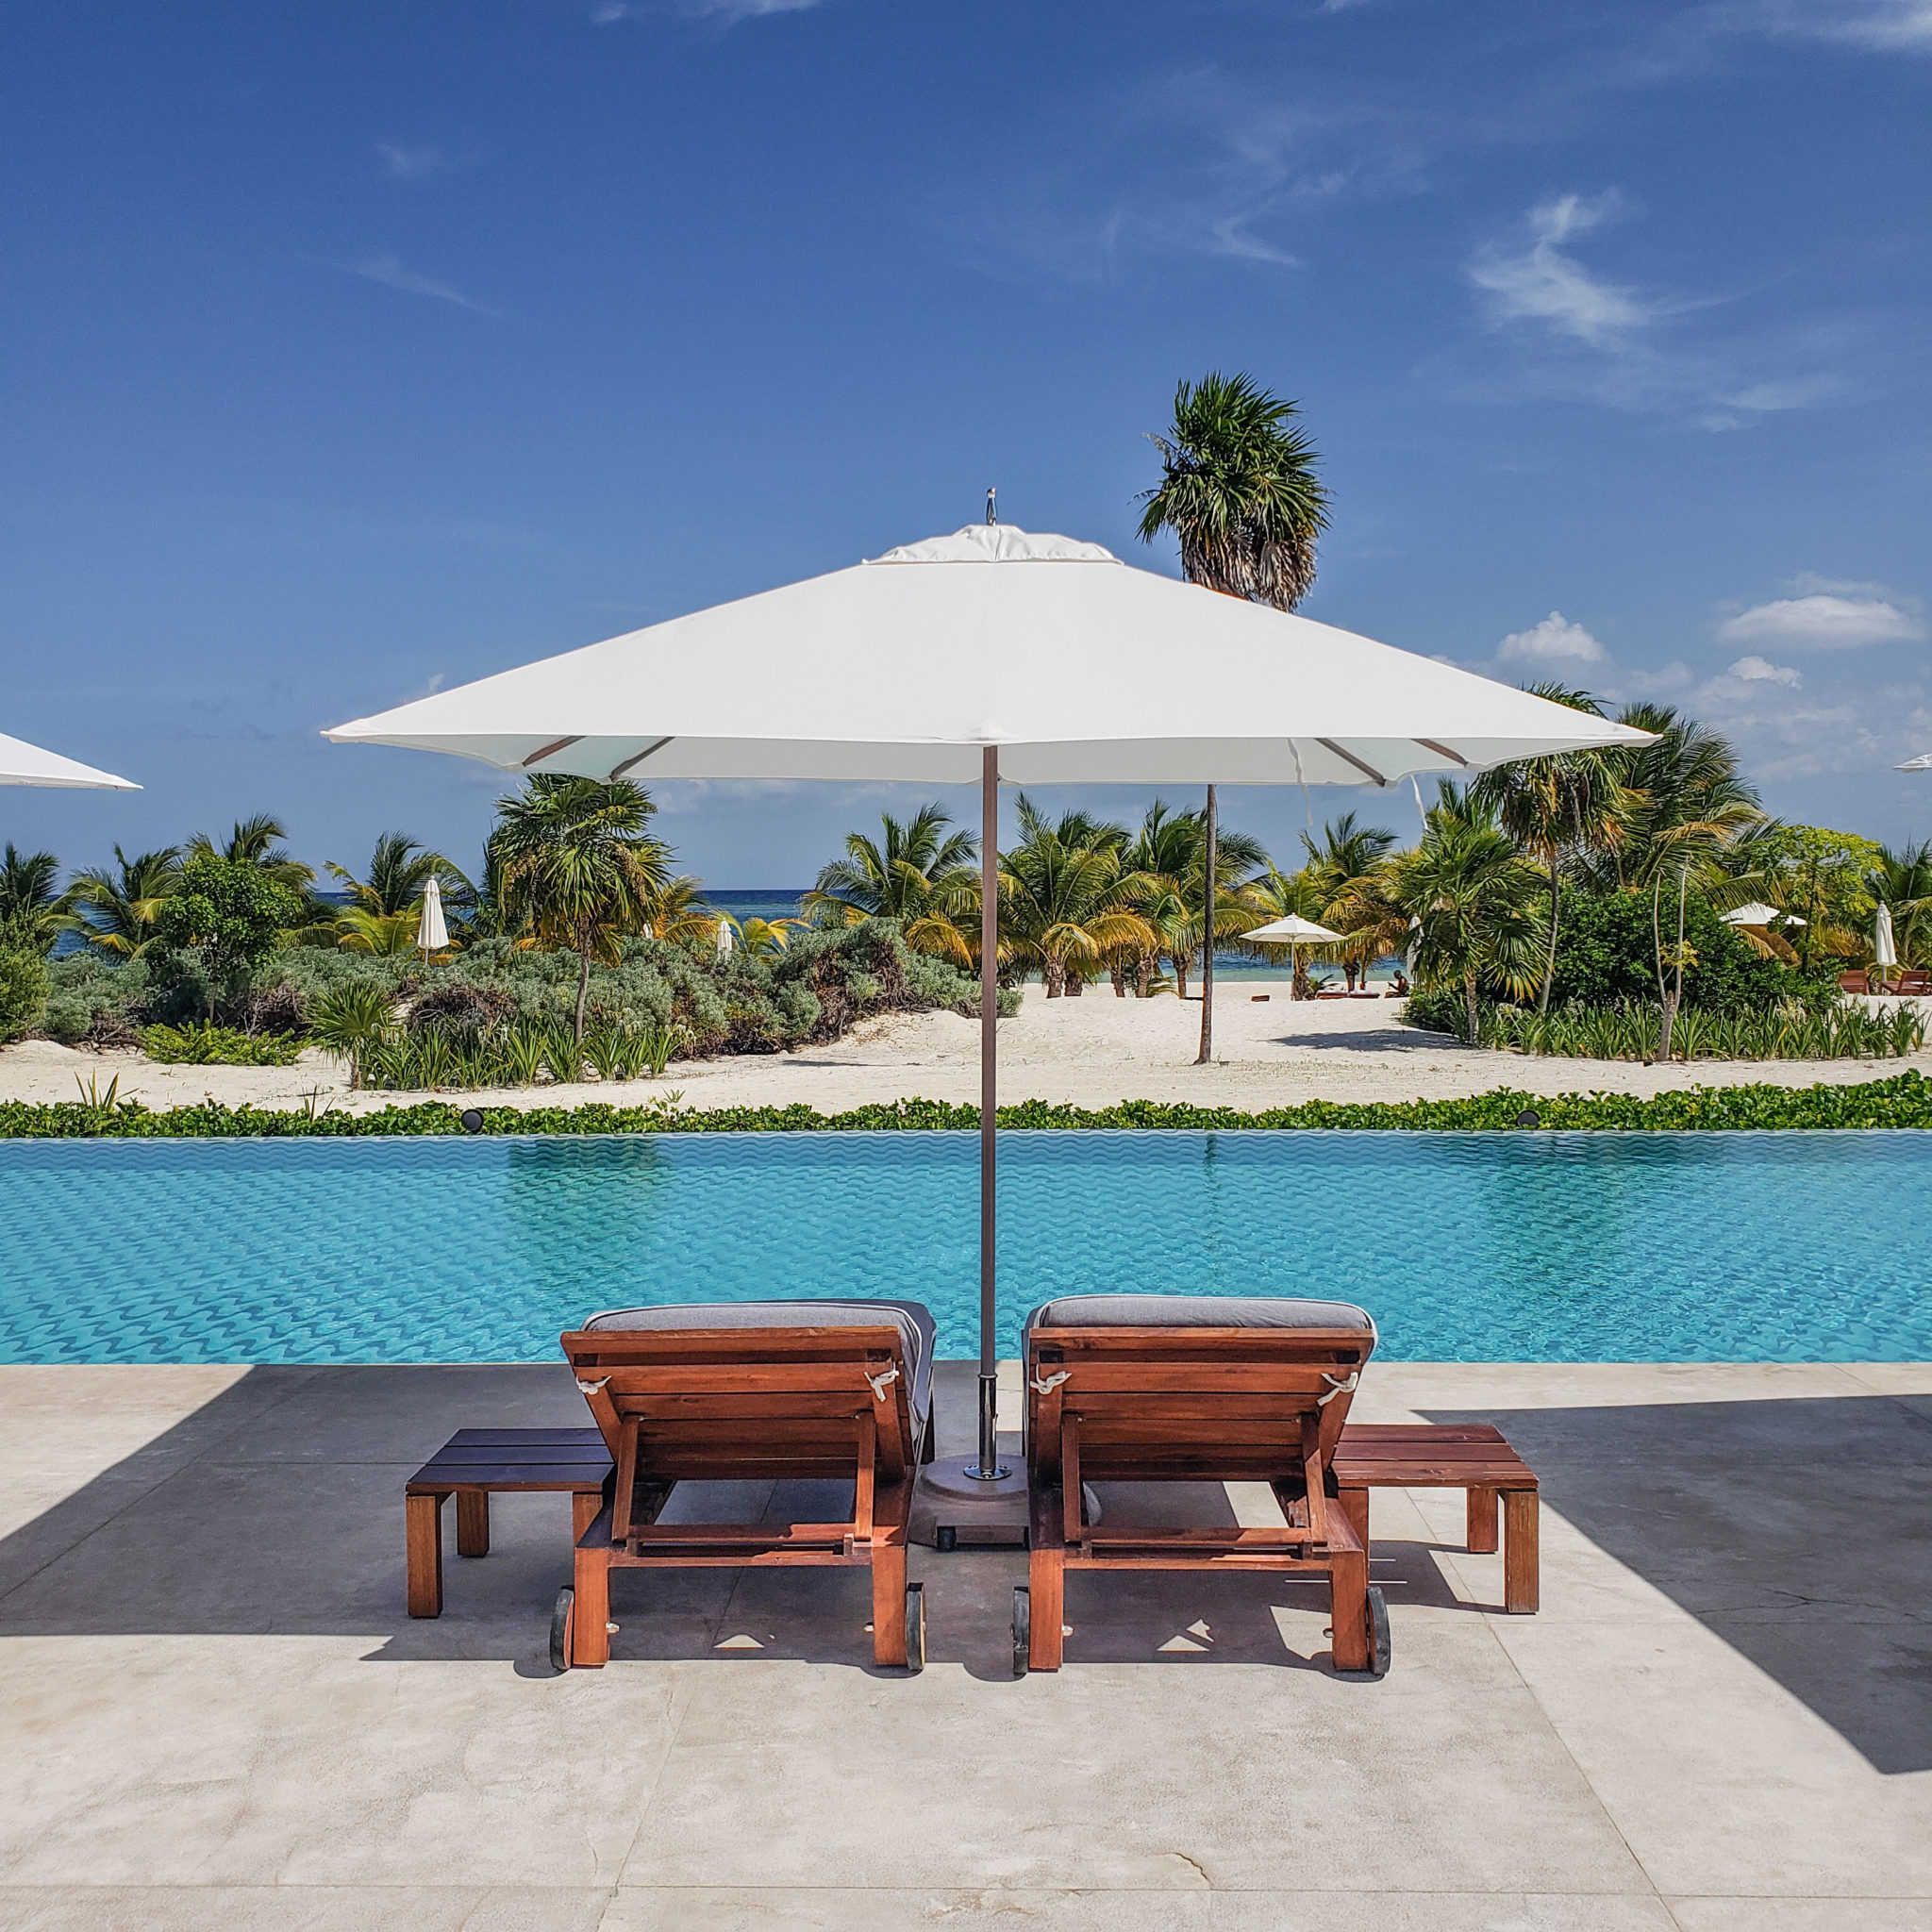 Chable Maroma Resort - Quintana Roo - Playa Del Carmen - Playa Maroma - Pool View